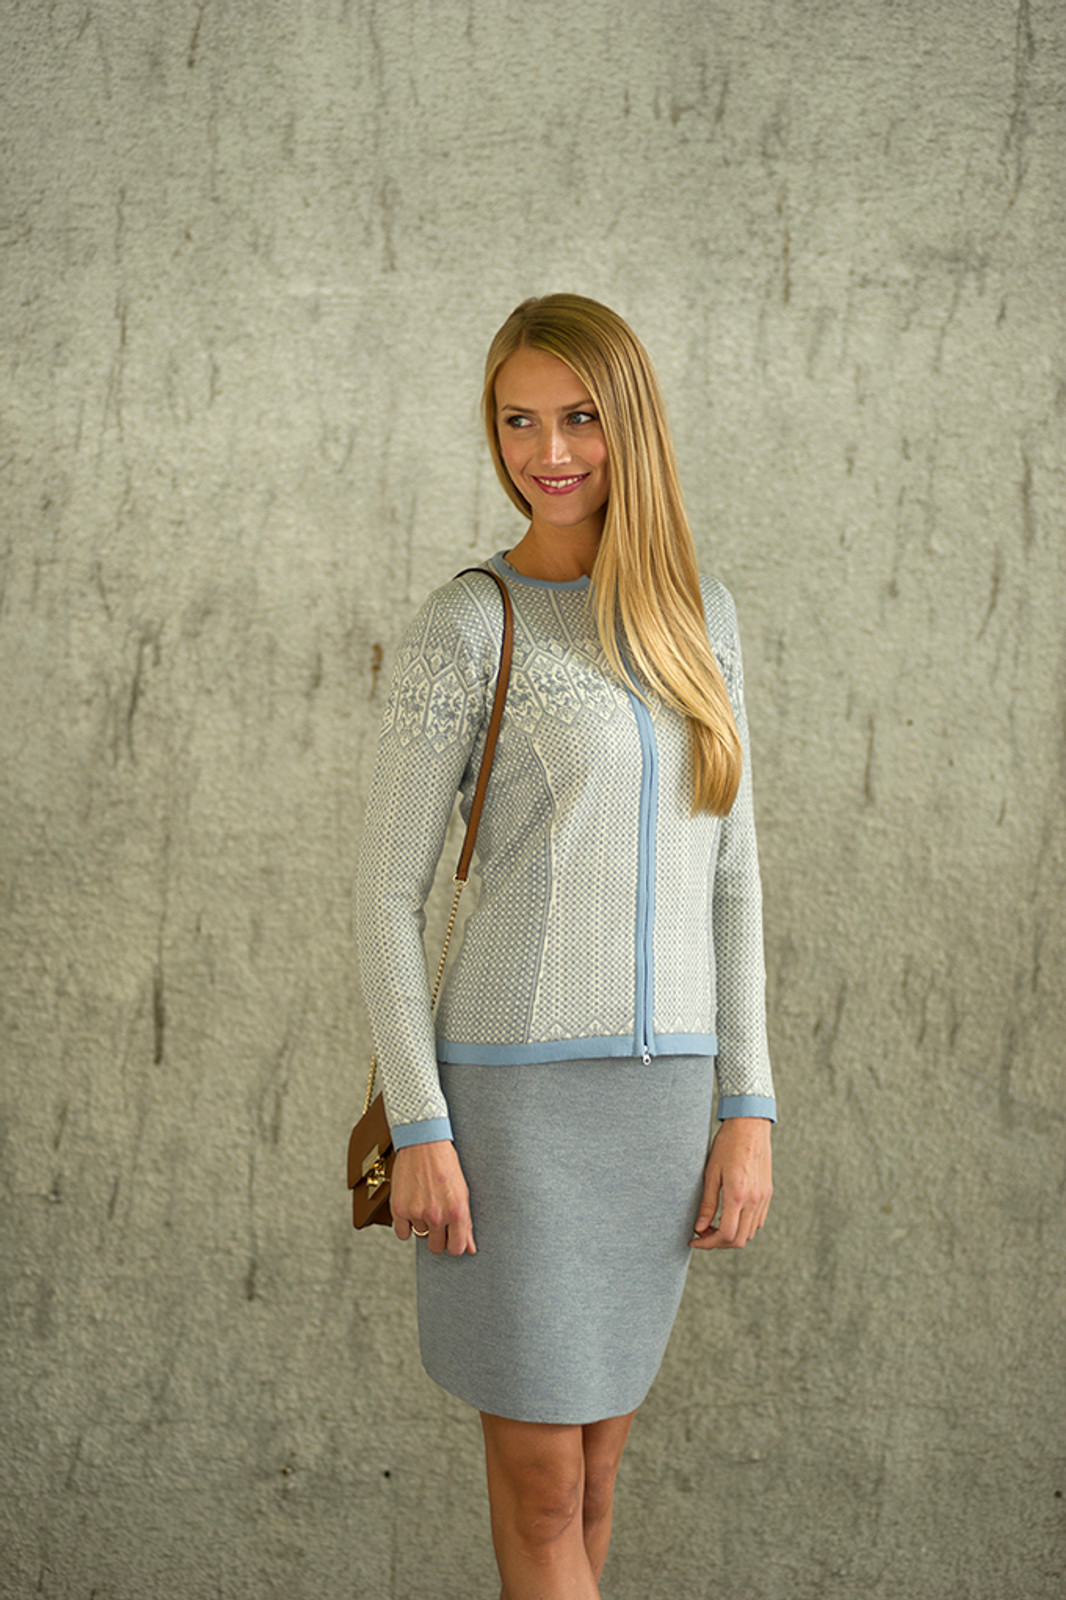 Woman wearing Dale of Norway's Sigrid Ladies Cardigan in Grey Mel/Off White/Ice Blue, 82071-E